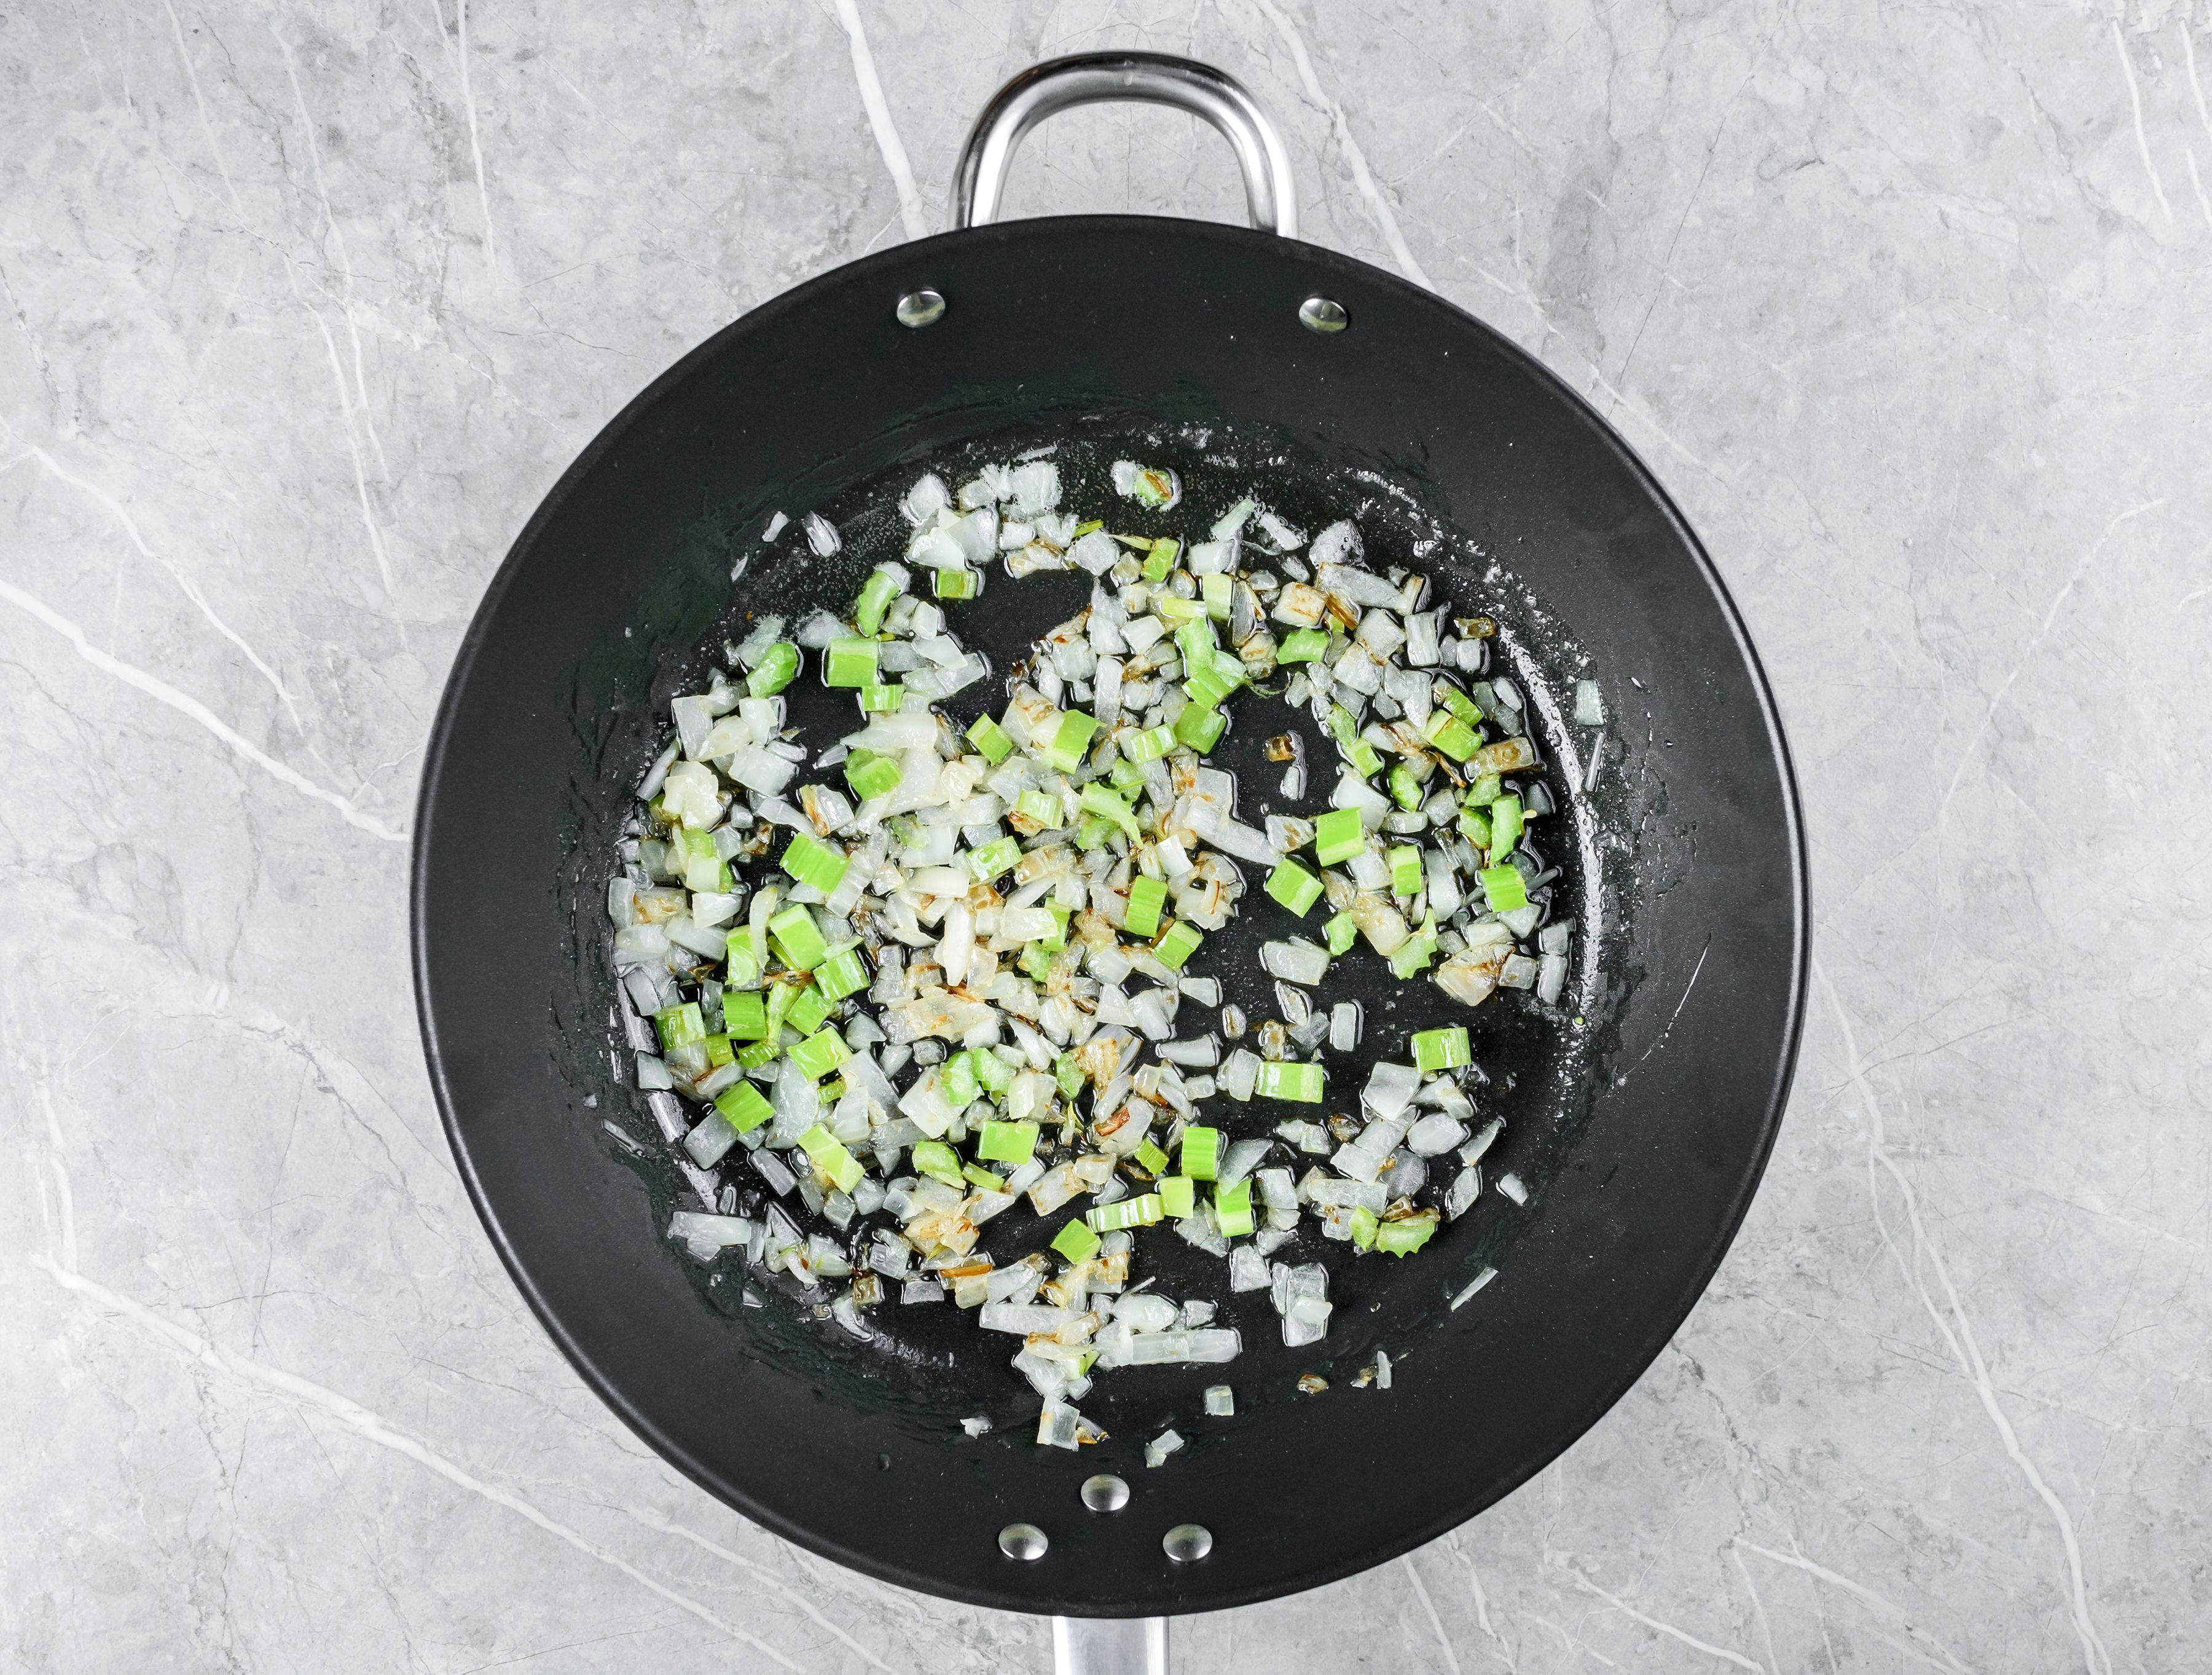 Sauté the onion and celery in the butter